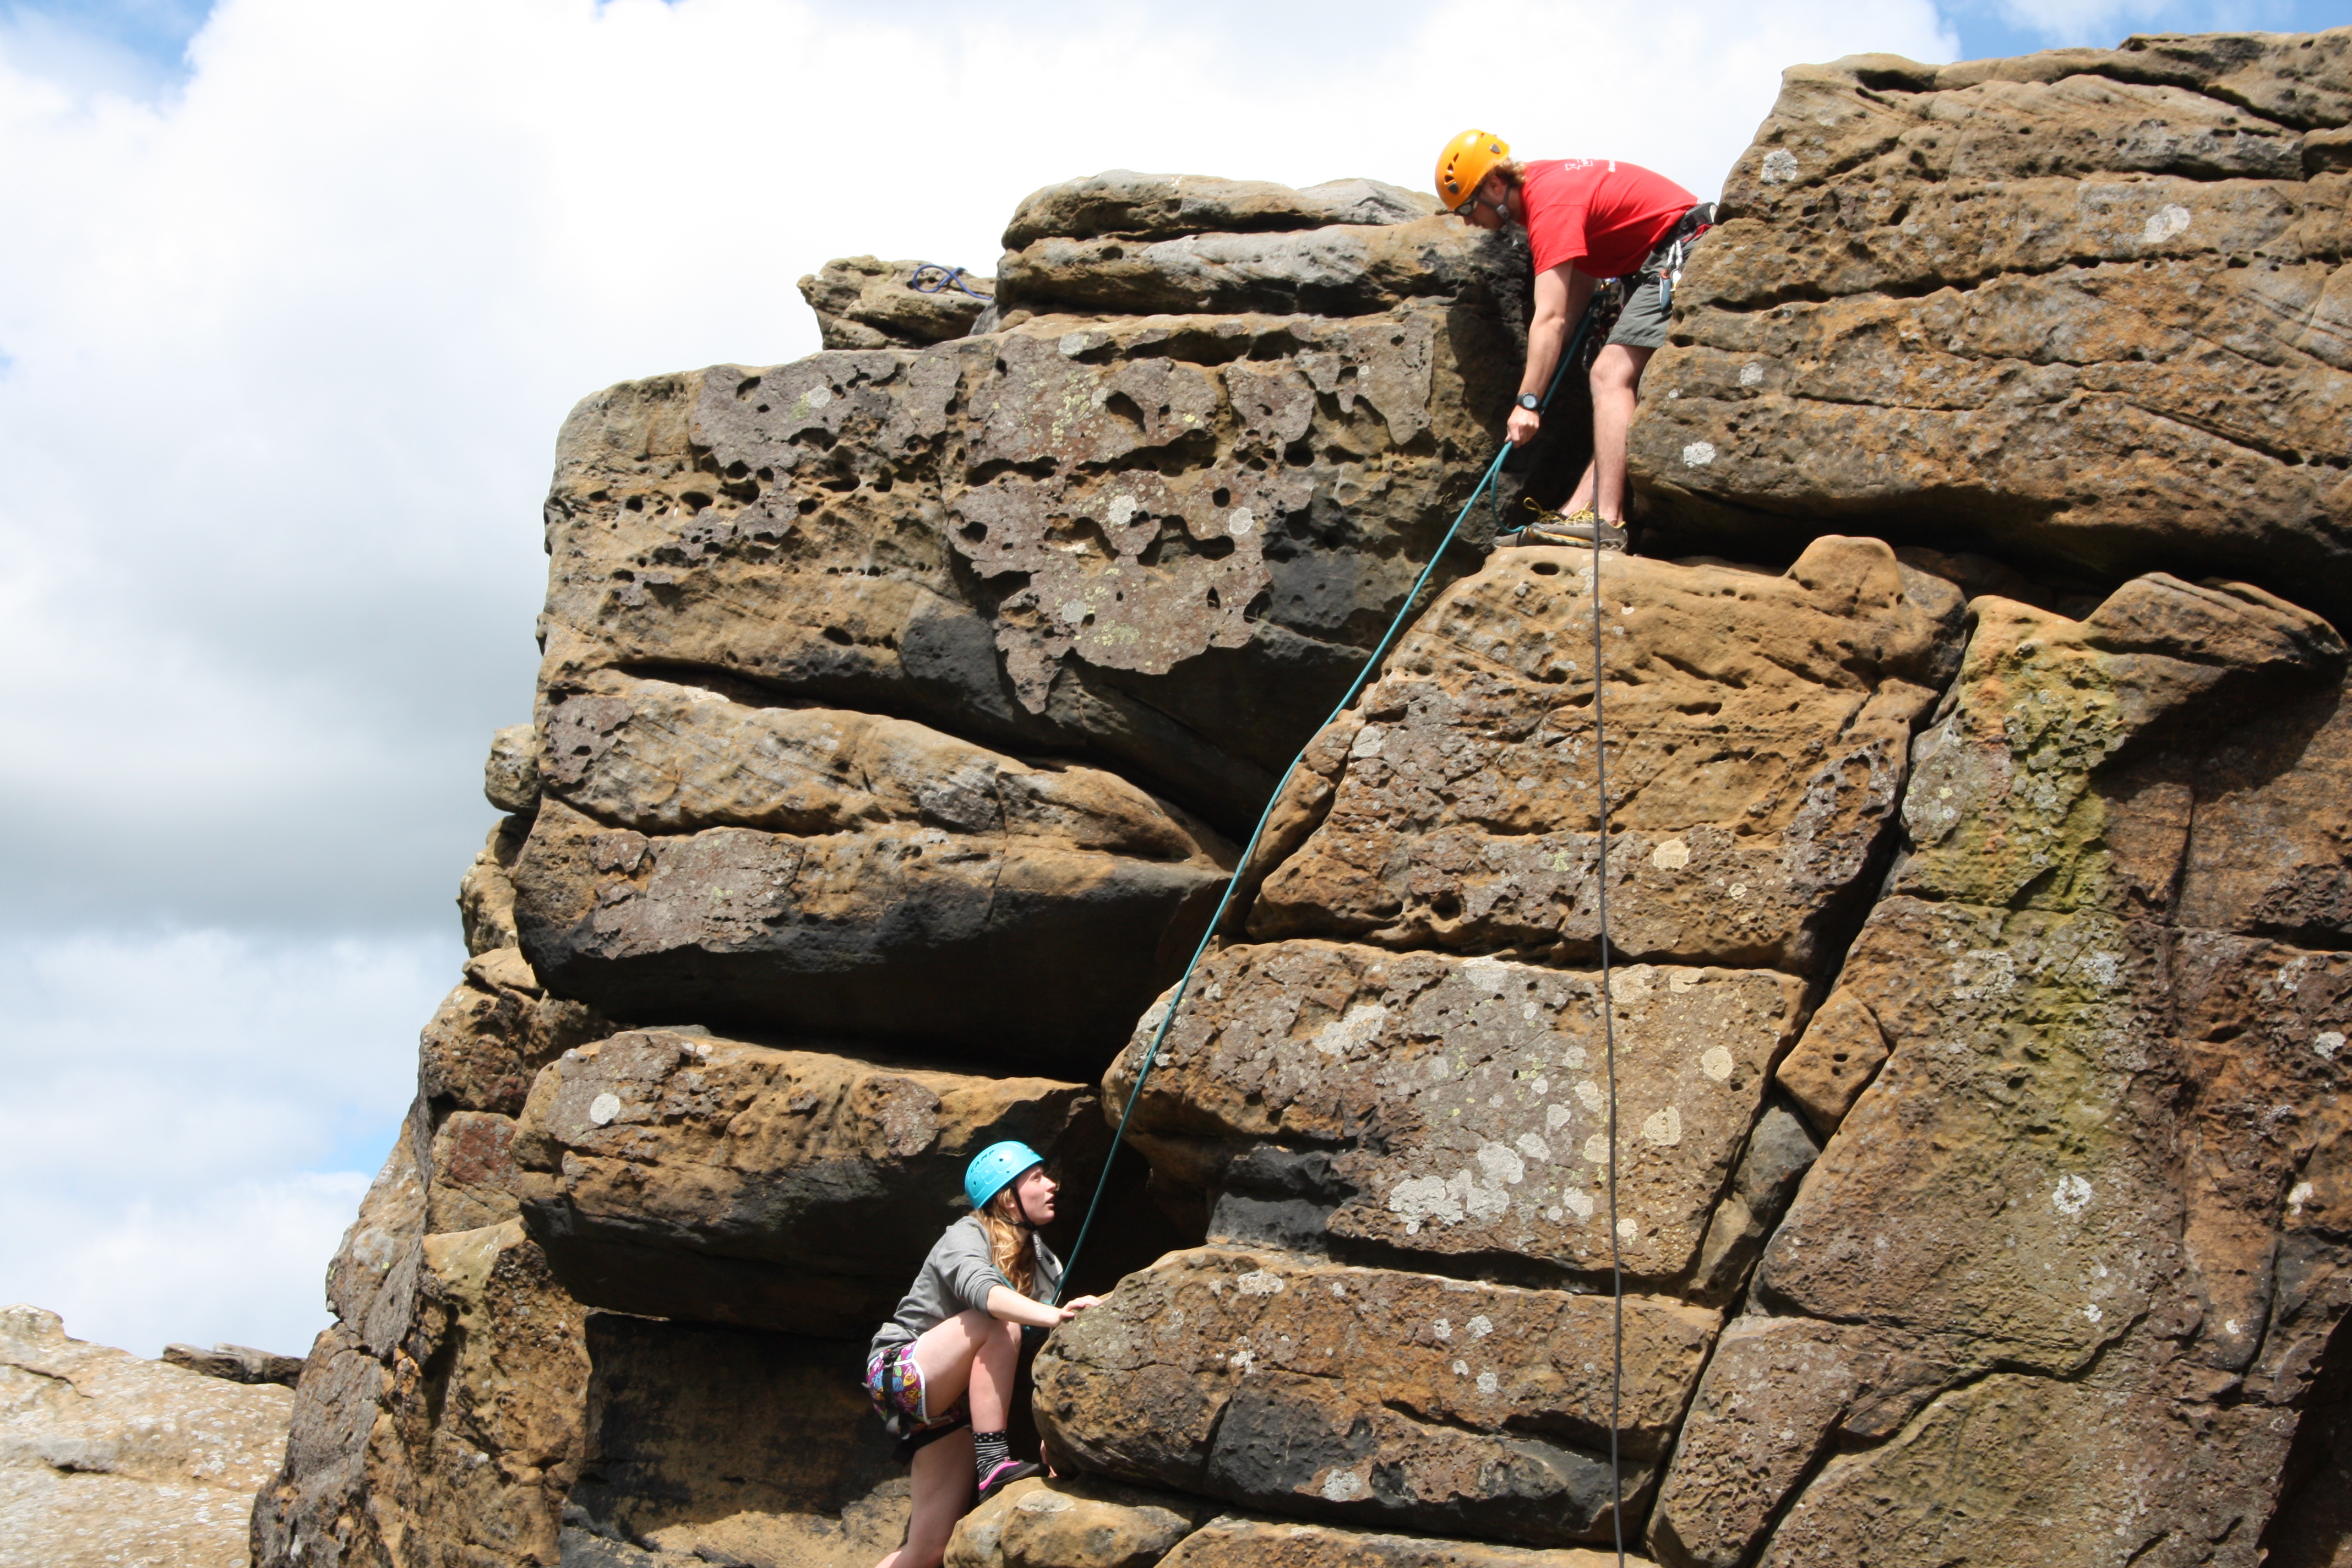 instructor helping a beginner rock climber ascend the rock face